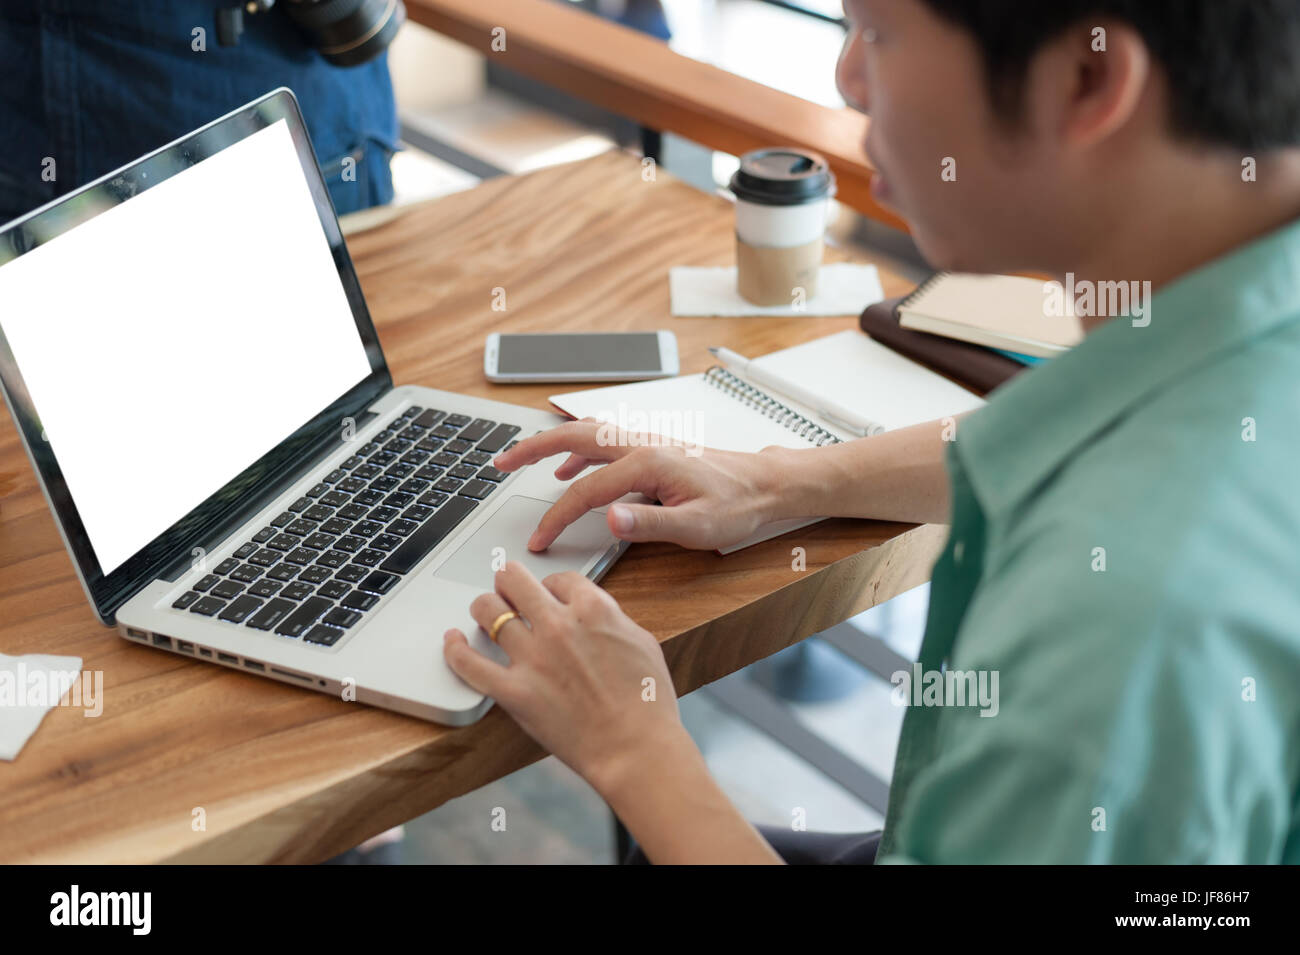 Asian hipster male with casual cloths typing on laptop computer keyboard while working  in cafe on workday. Freelancer - Stock Image